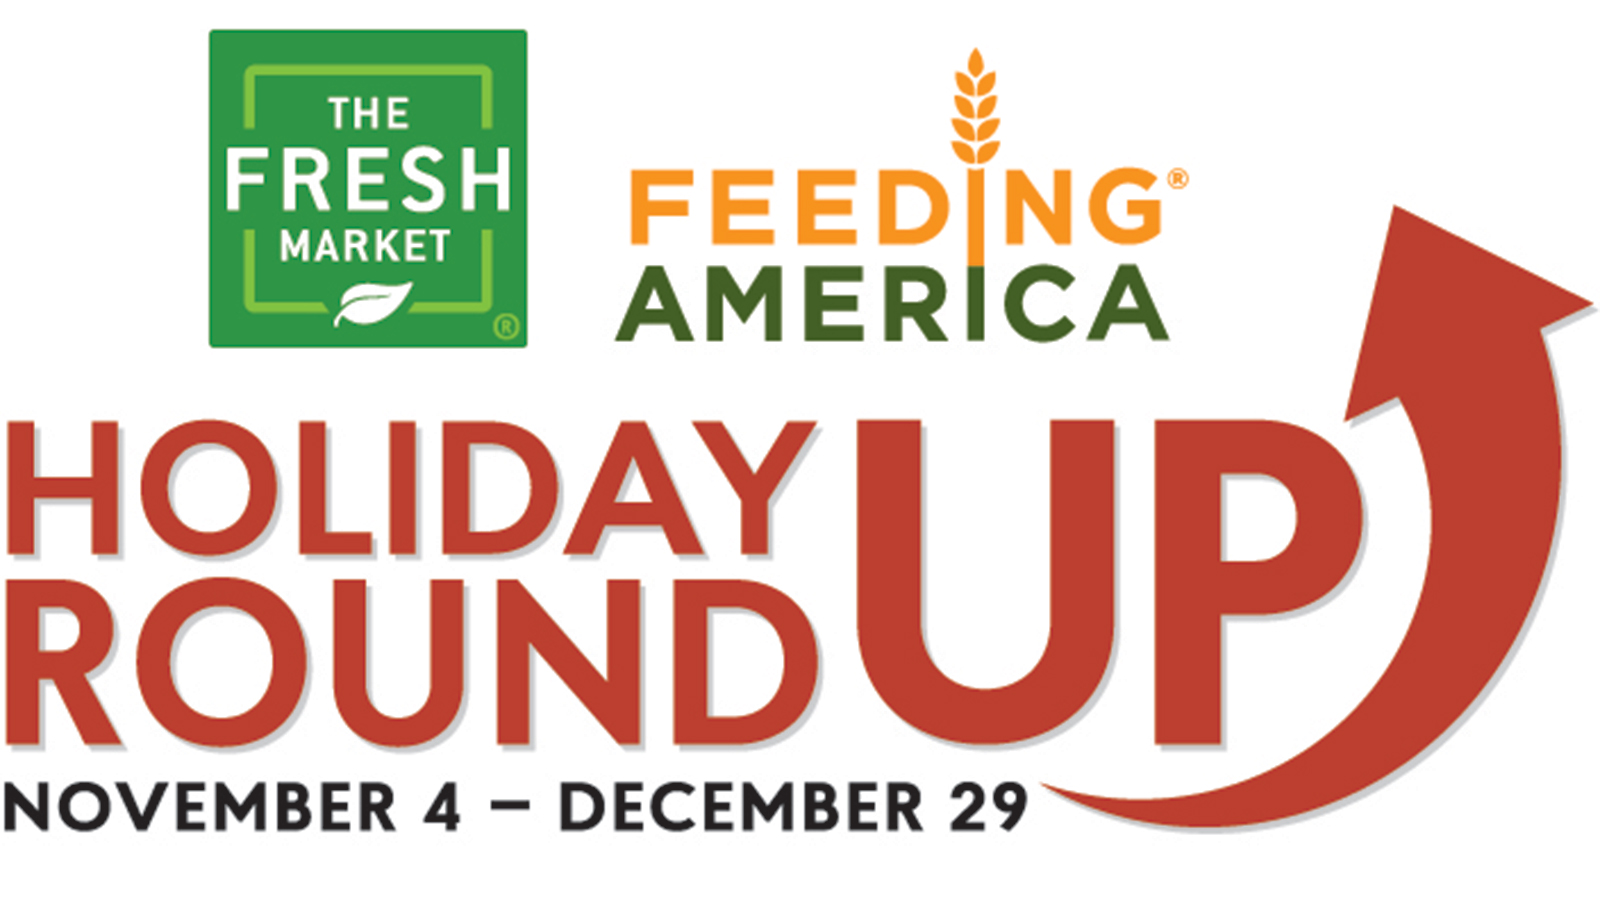 The Fresh Market Round Up logo